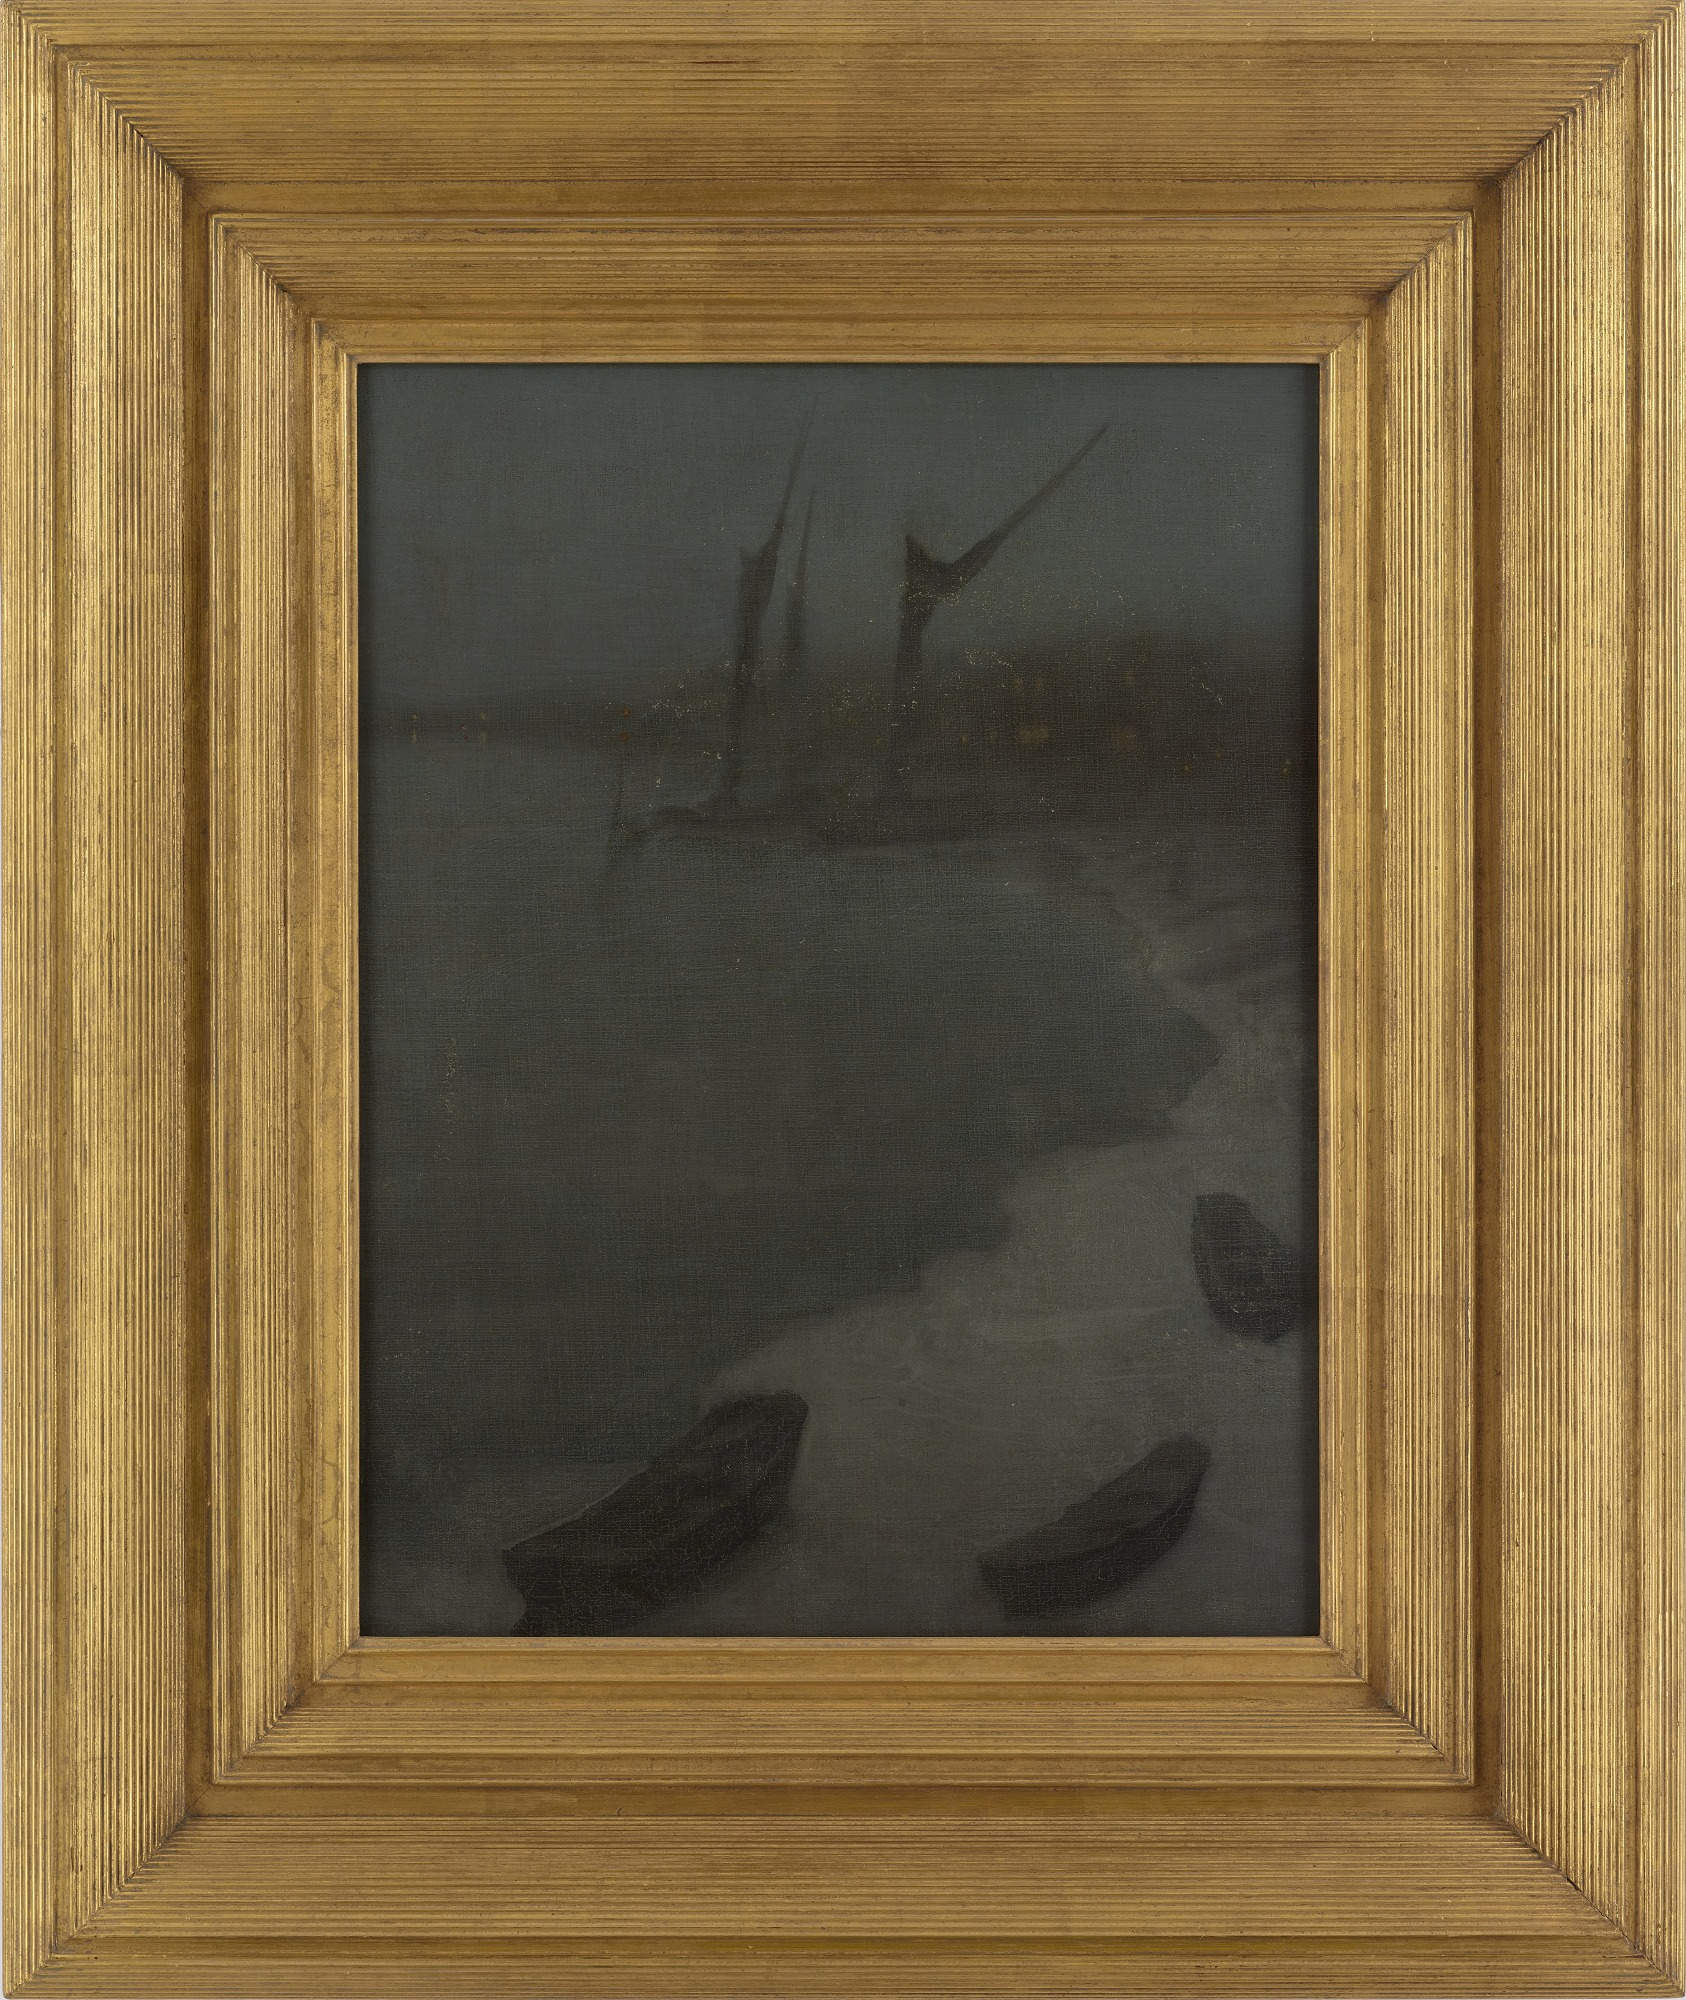 : Nocturne: Grey and Silver--Chelsea Embankment, Winter